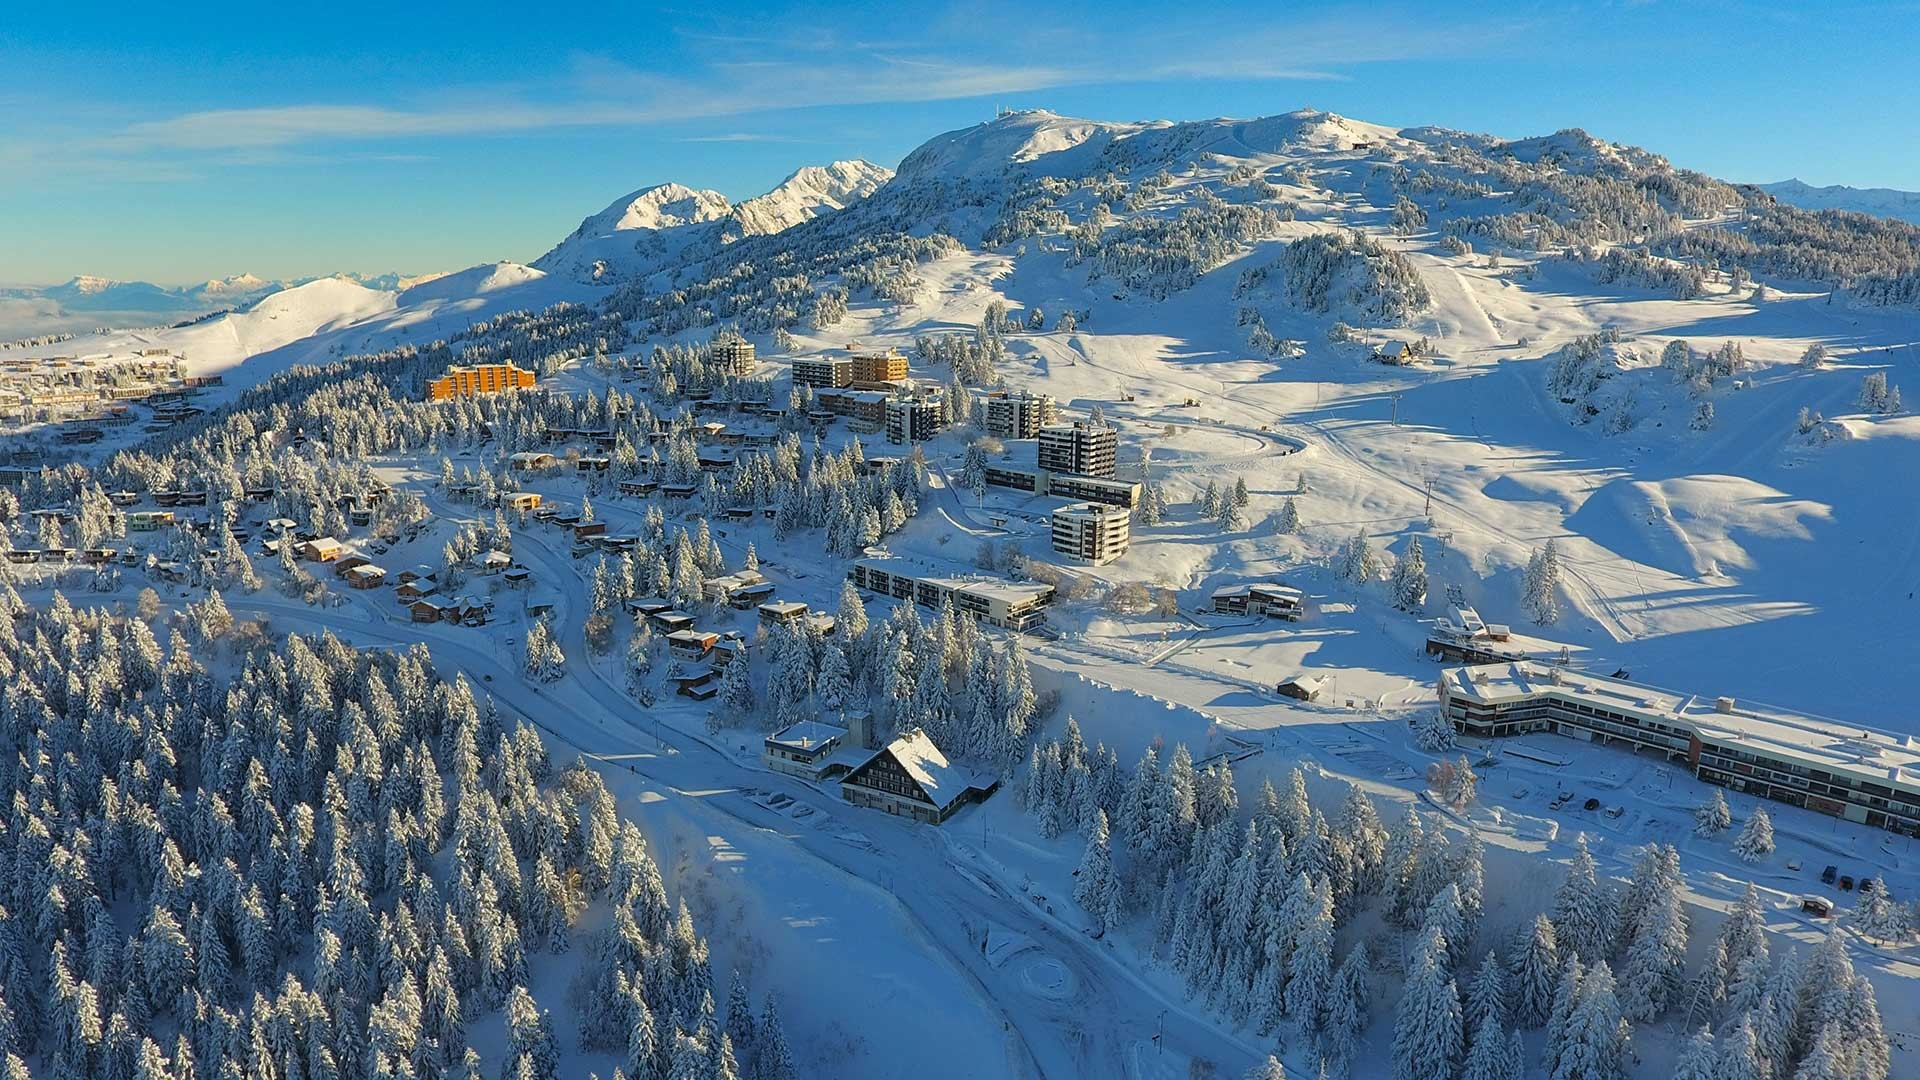 Chamrousse promo offer: book your stay!